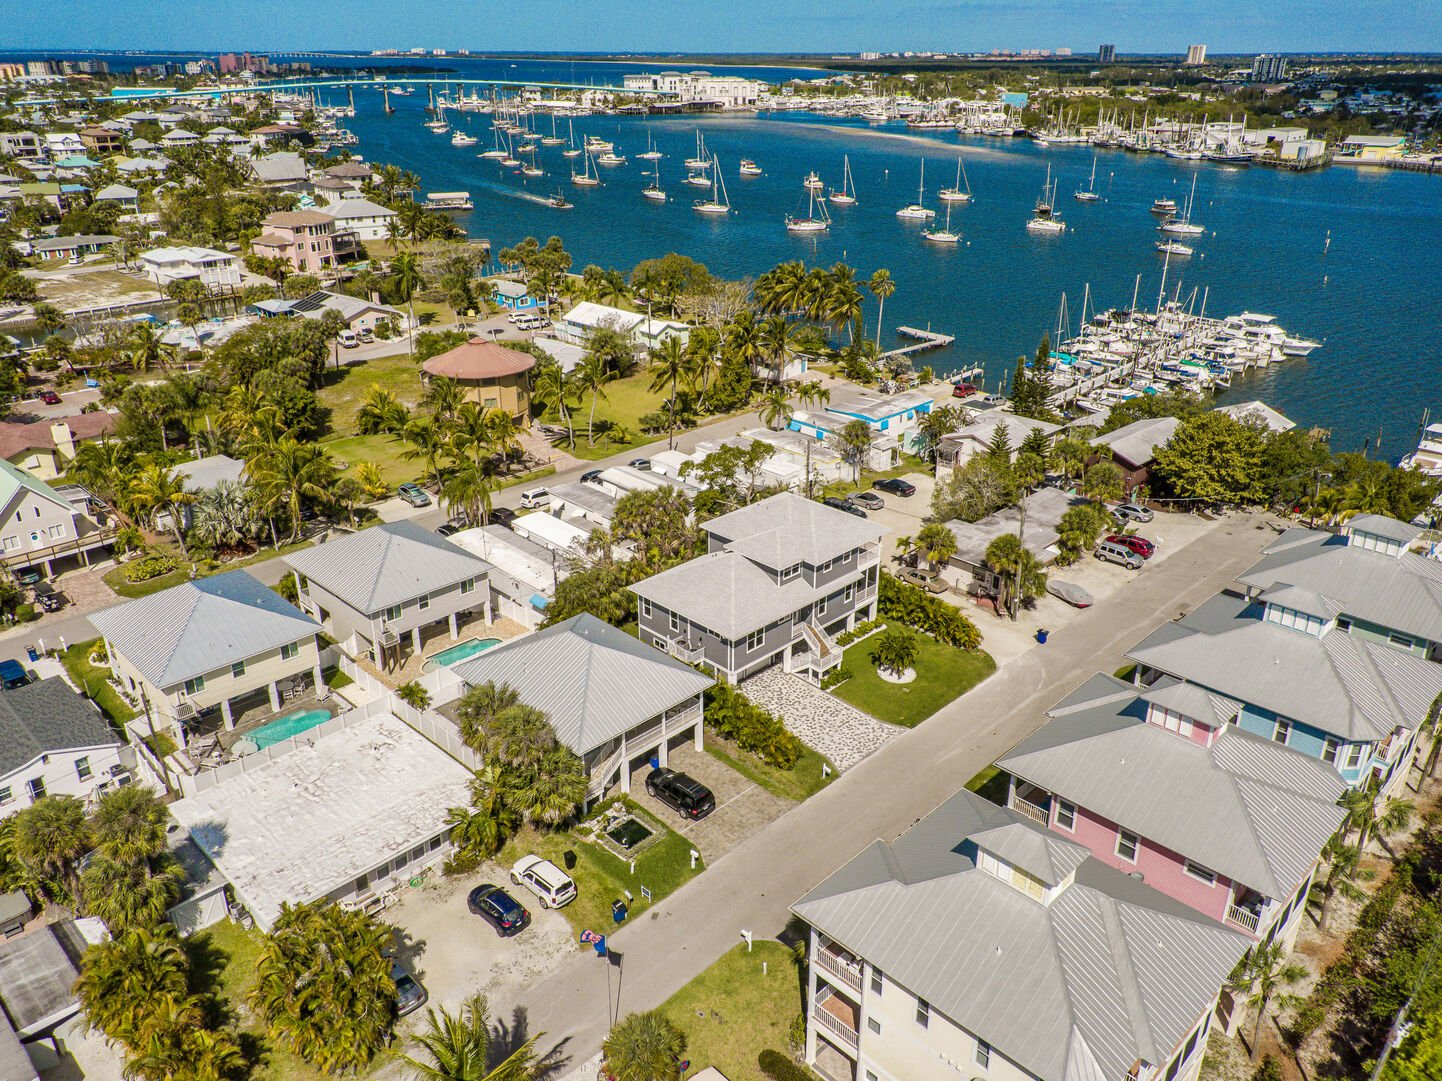 Aerial View of the neighborhood and our Fort Myers Vacation House Rental